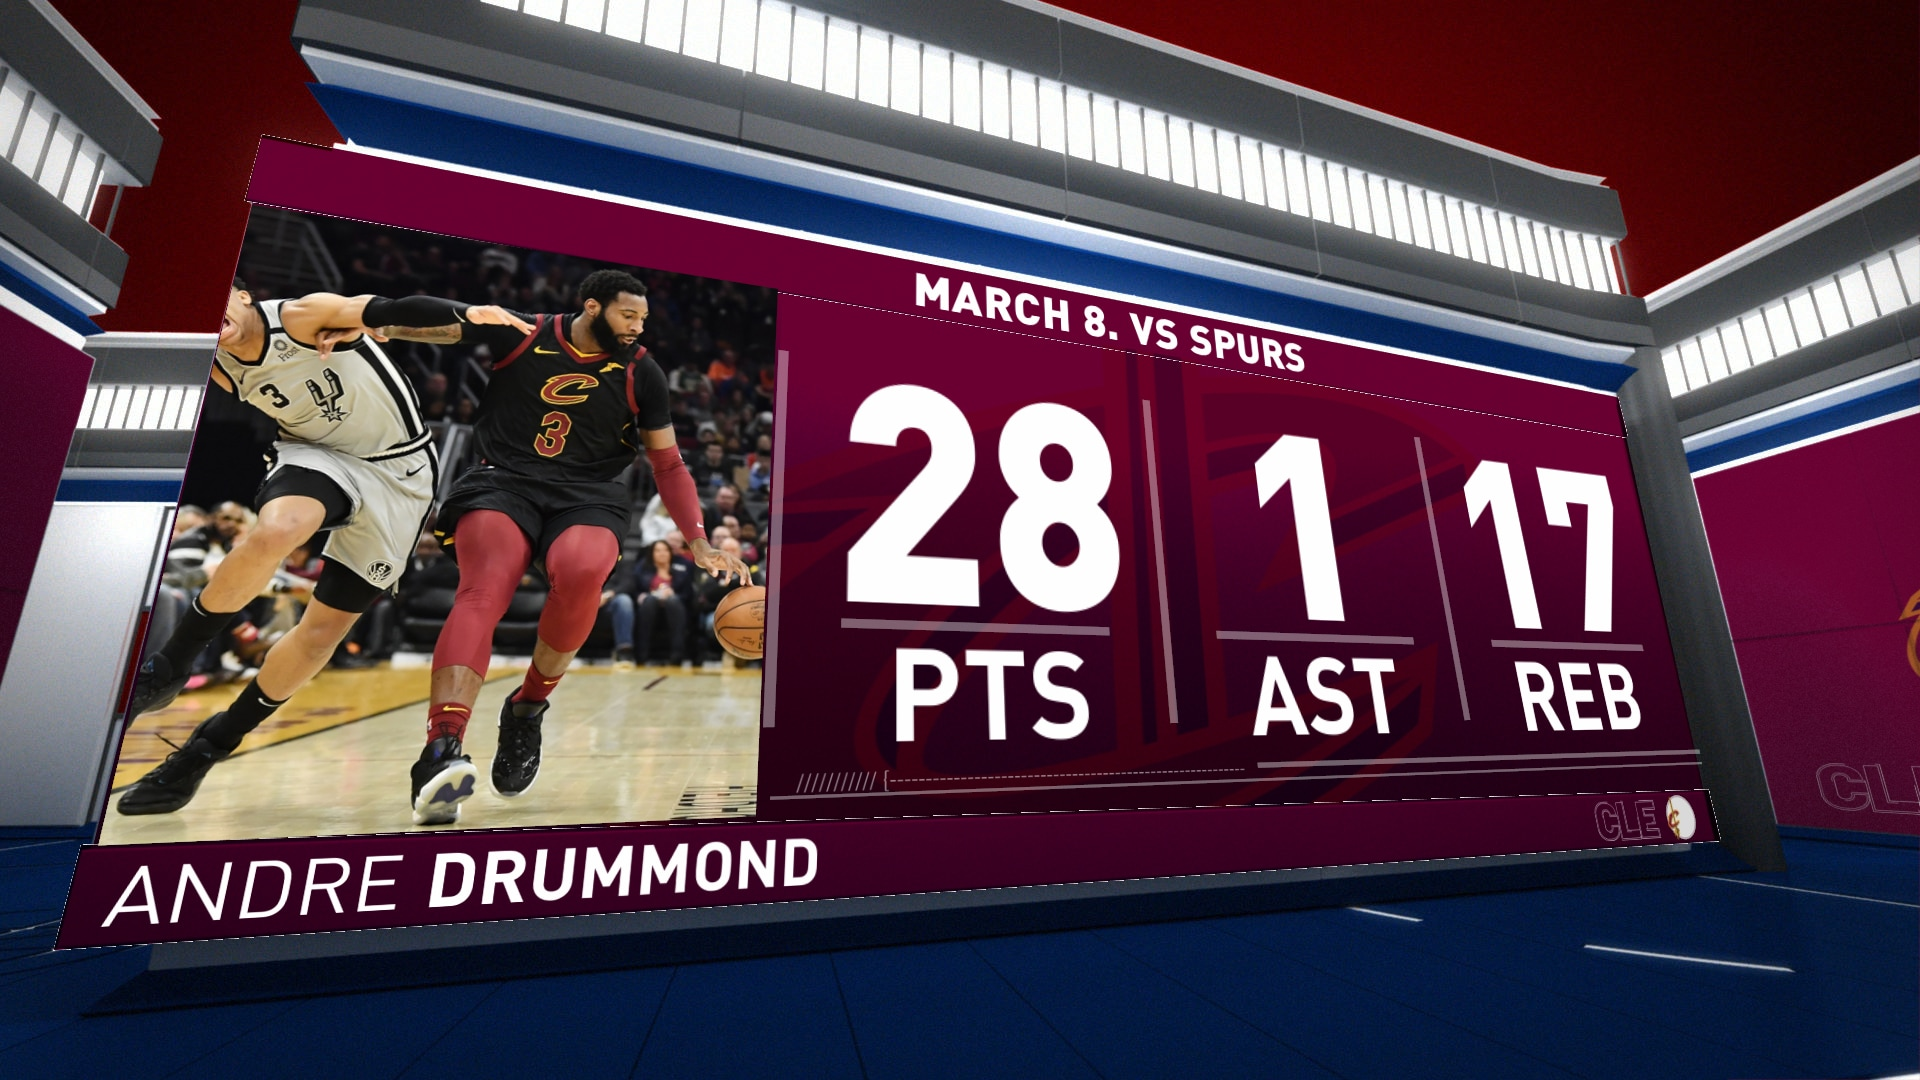 Highlights: Andre Drummond | Cavaliers vs. Spurs